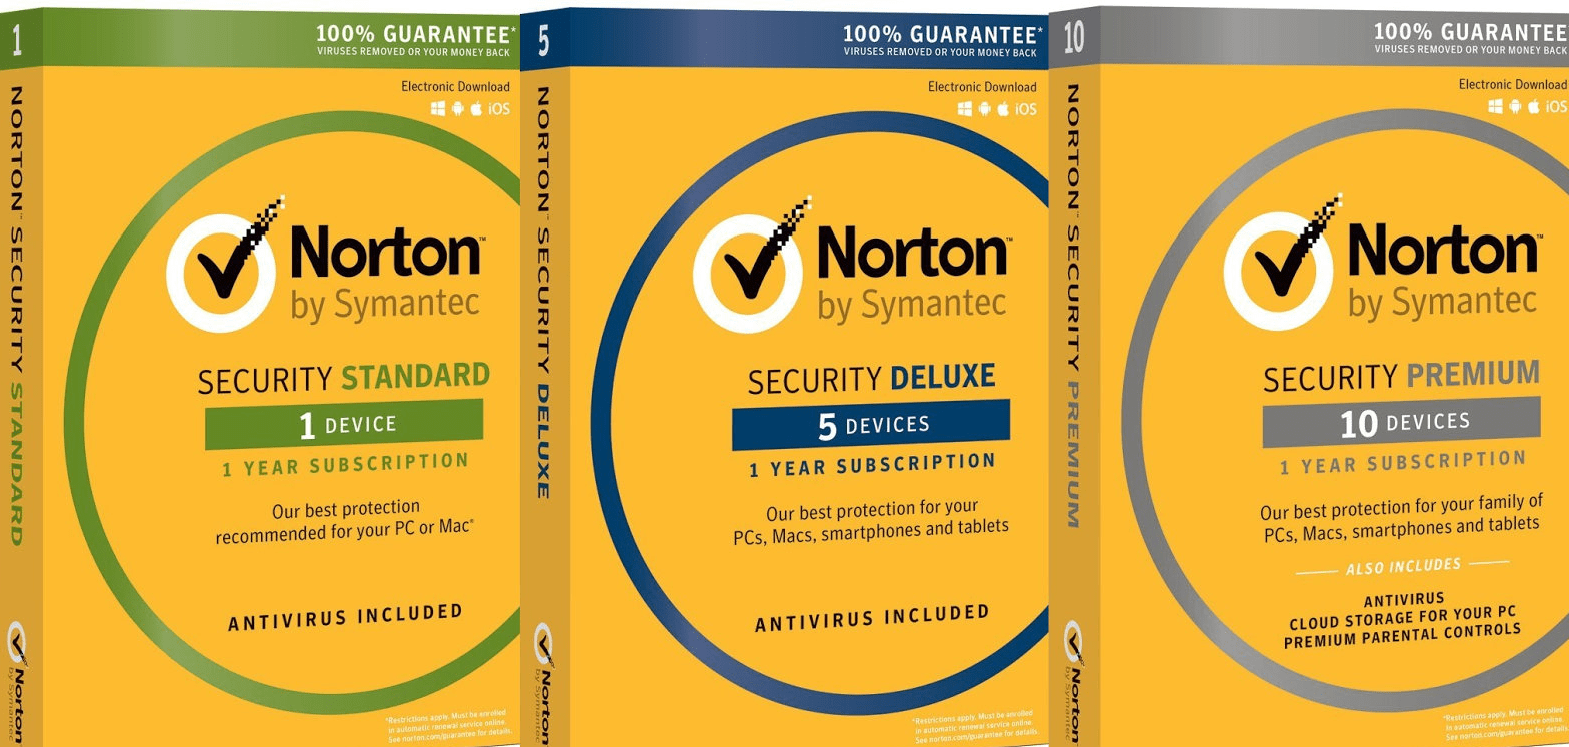 Norton Security Review Coupons Upto 40 Off By Tsa